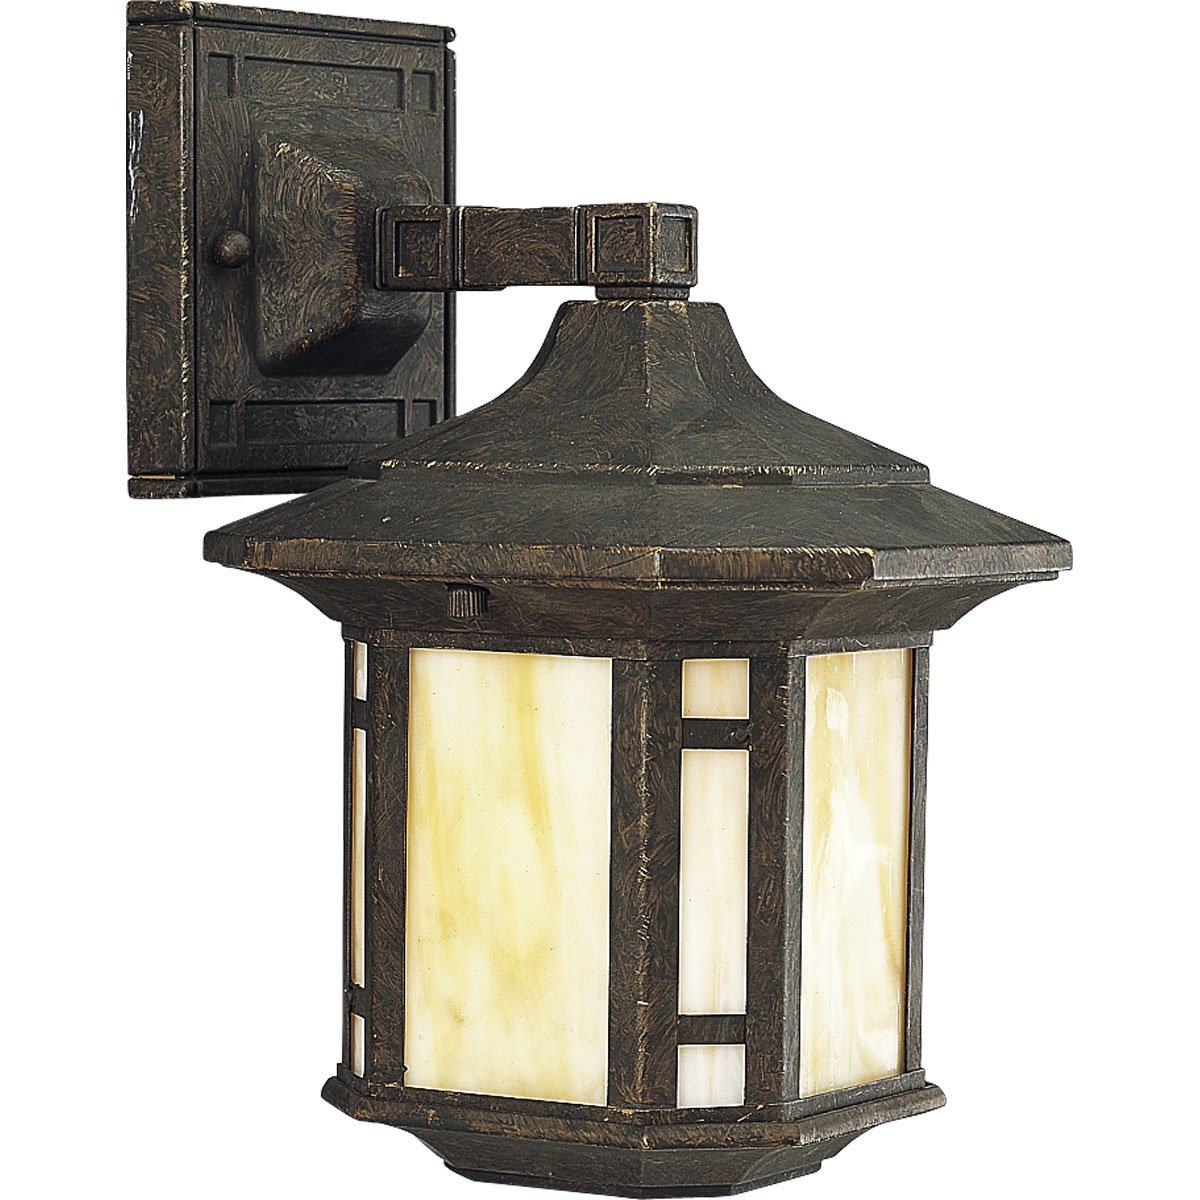 Attractive Progress Lighting P5628 46 1 Light Wall Lantern With Honey Art Glass And  Mica Accent Panels, Weathered Bronze   Wall Porch Lights   Amazon.com Ideas